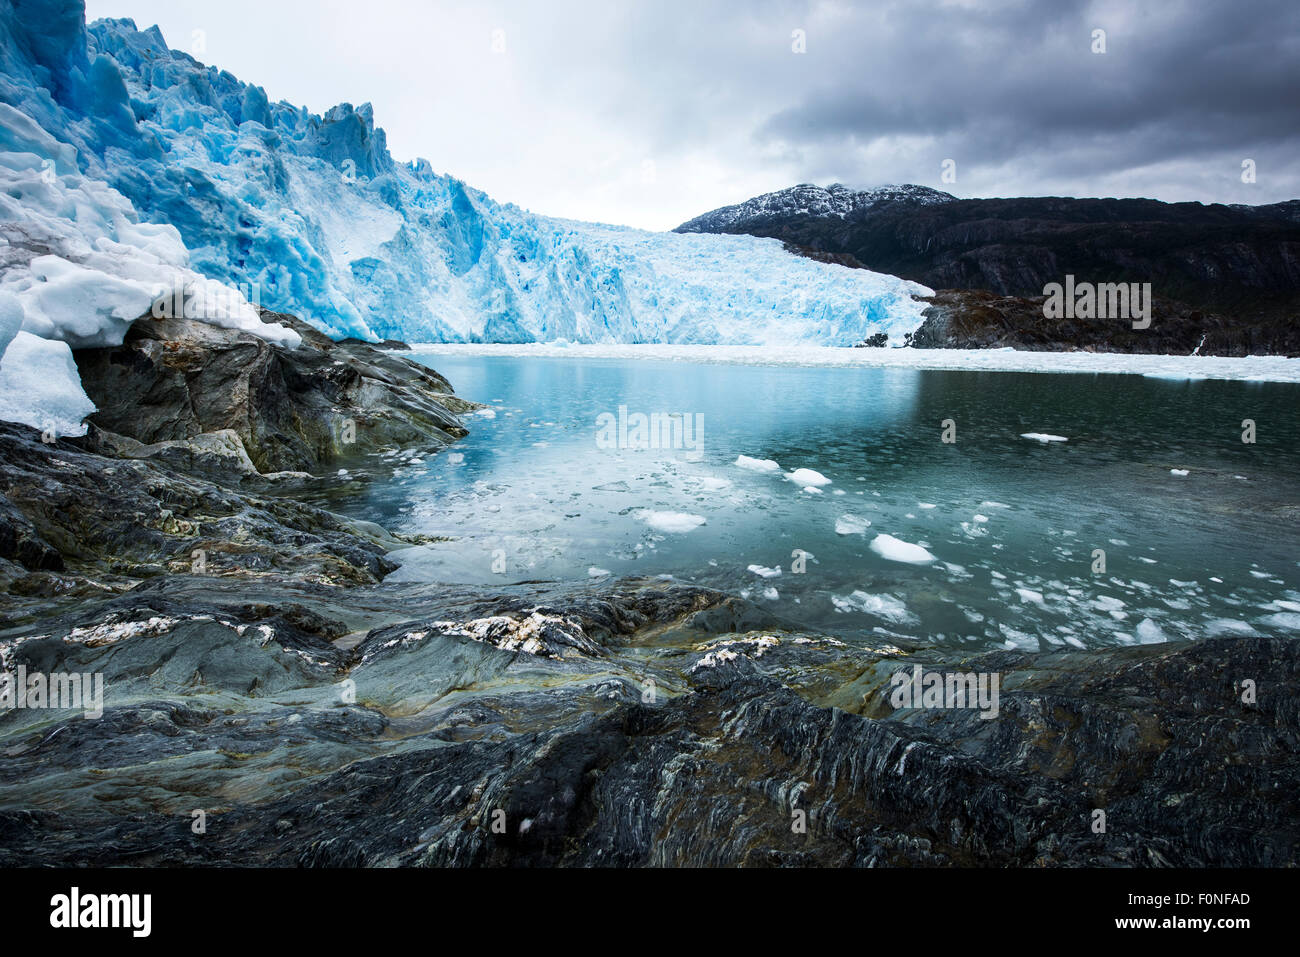 Glacier Brujo Asie Chili Patagonie Fjord Photo Stock